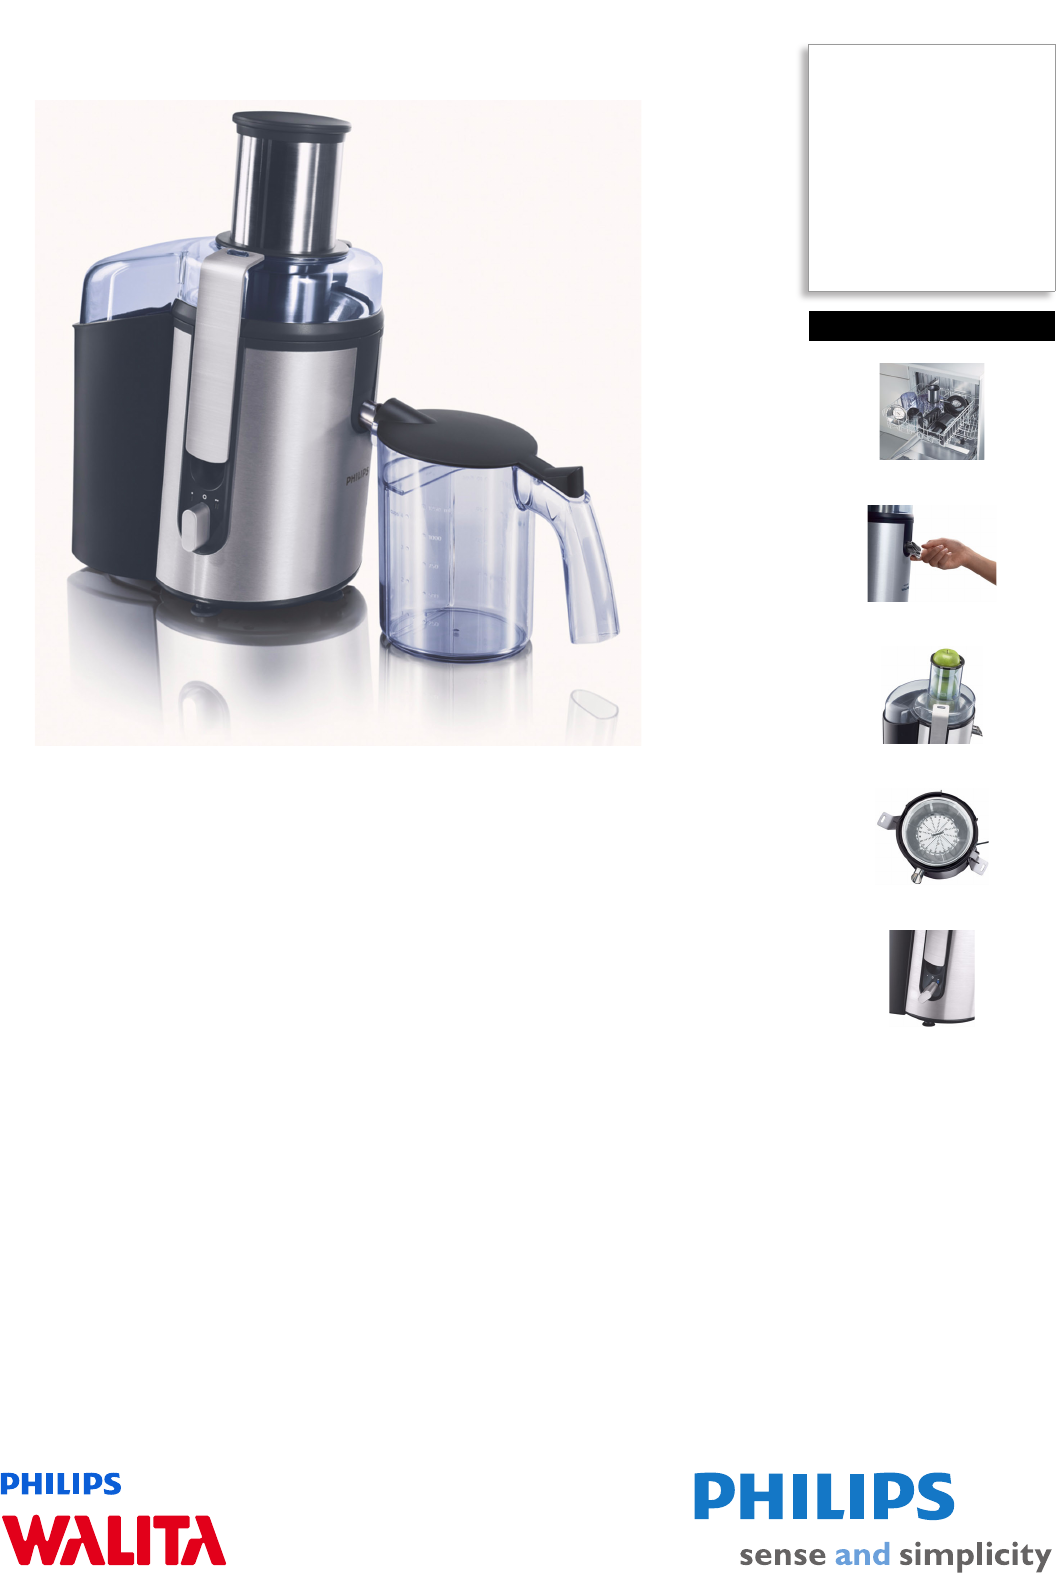 philips juicer ri1865 user guide manualsonline com rh kitchen manualsonline com Philips Norelco Philips Norelco